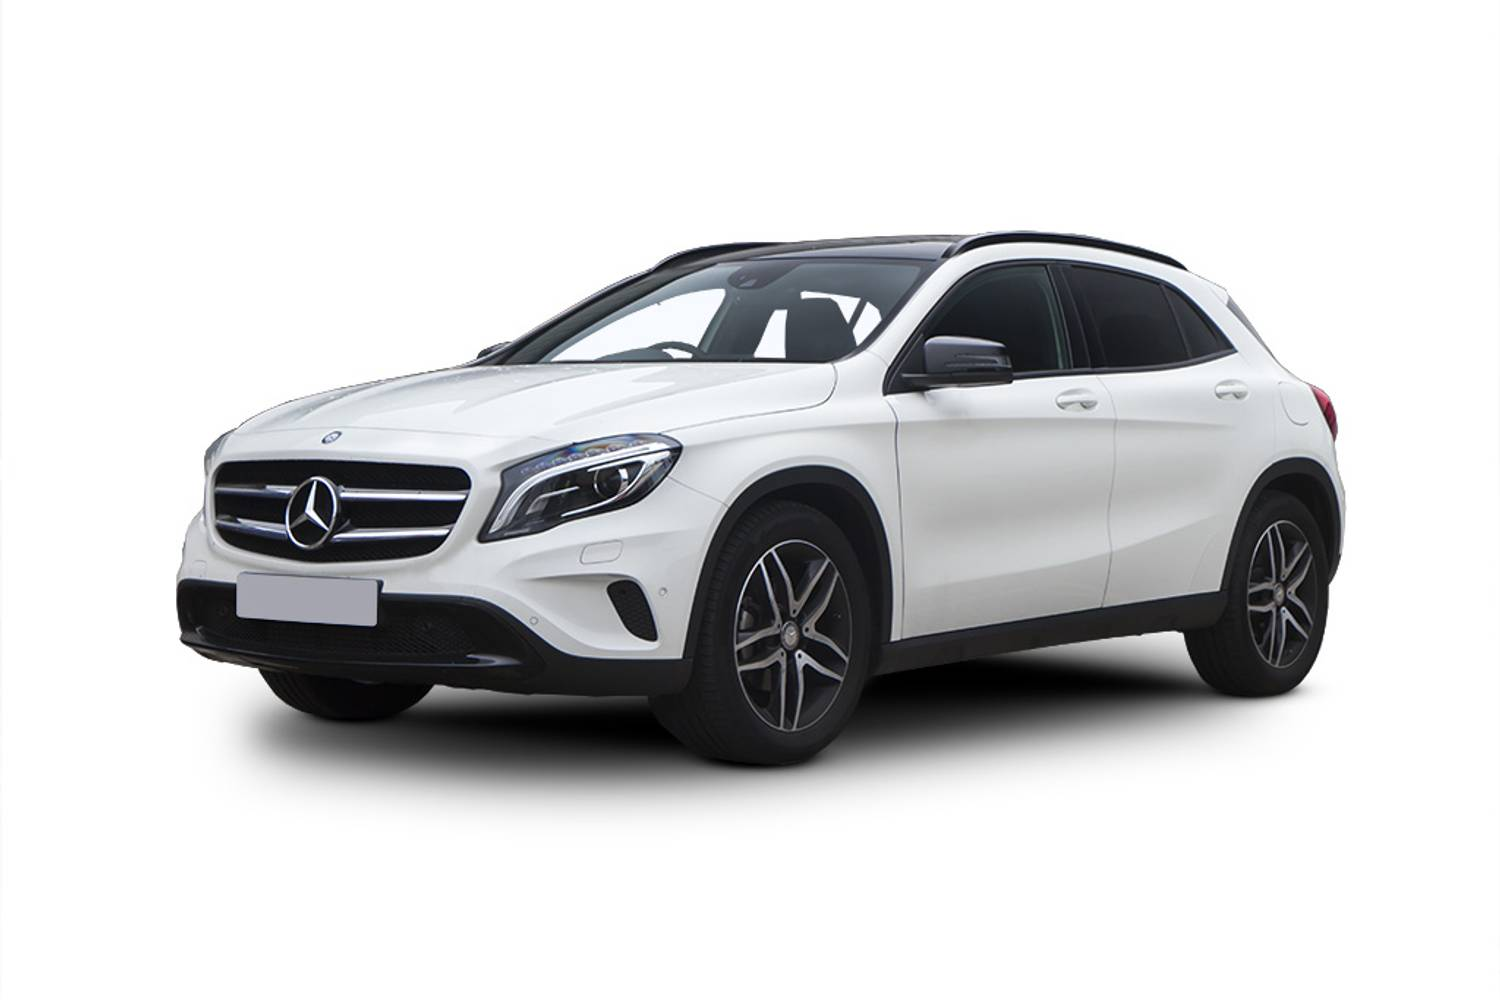 new mercedes benz gla class diesel hatchback gla 200d sport 5 door auto 2015 for sale. Black Bedroom Furniture Sets. Home Design Ideas